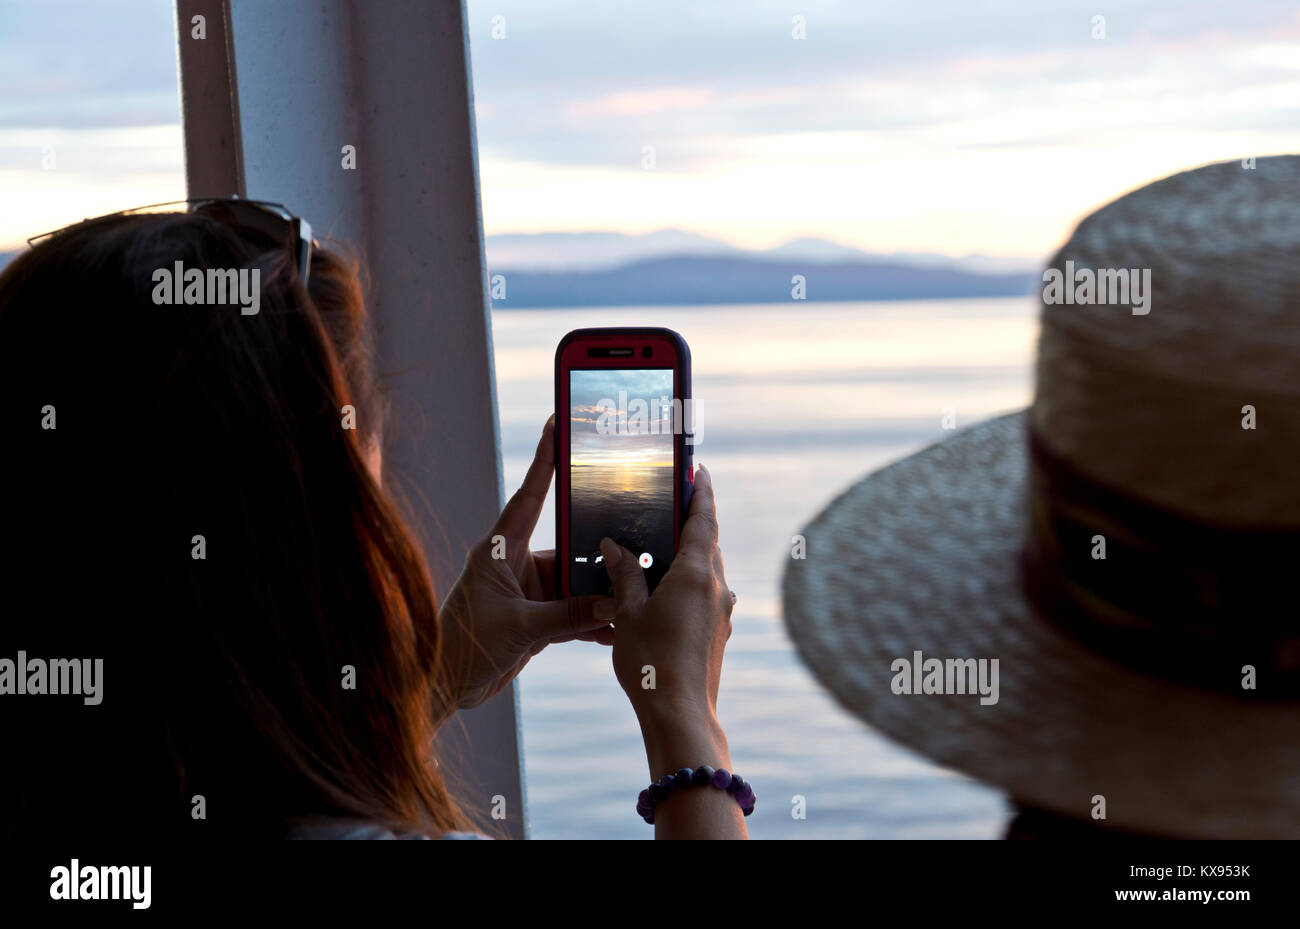 Woman taking a photograph with her cell phone of the sunset on the water.  On a BC Ferry on the Strait of Georgia. Stock Photo